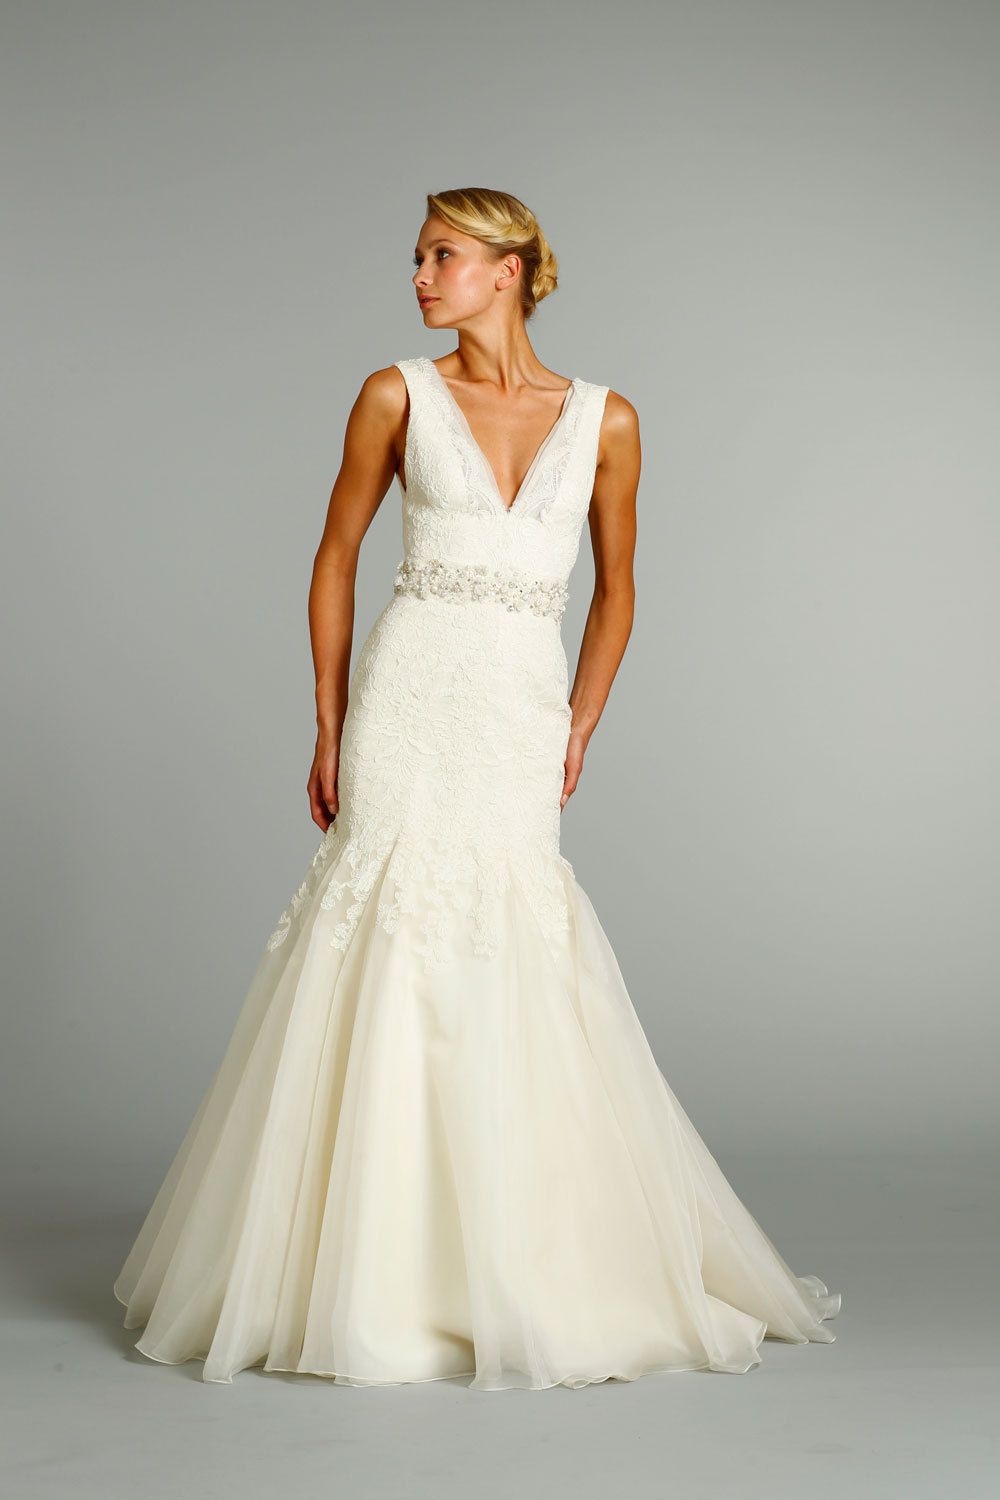 Fall-2012-wedding-dress-jim-hjelm-bridal-gowns-8251.full